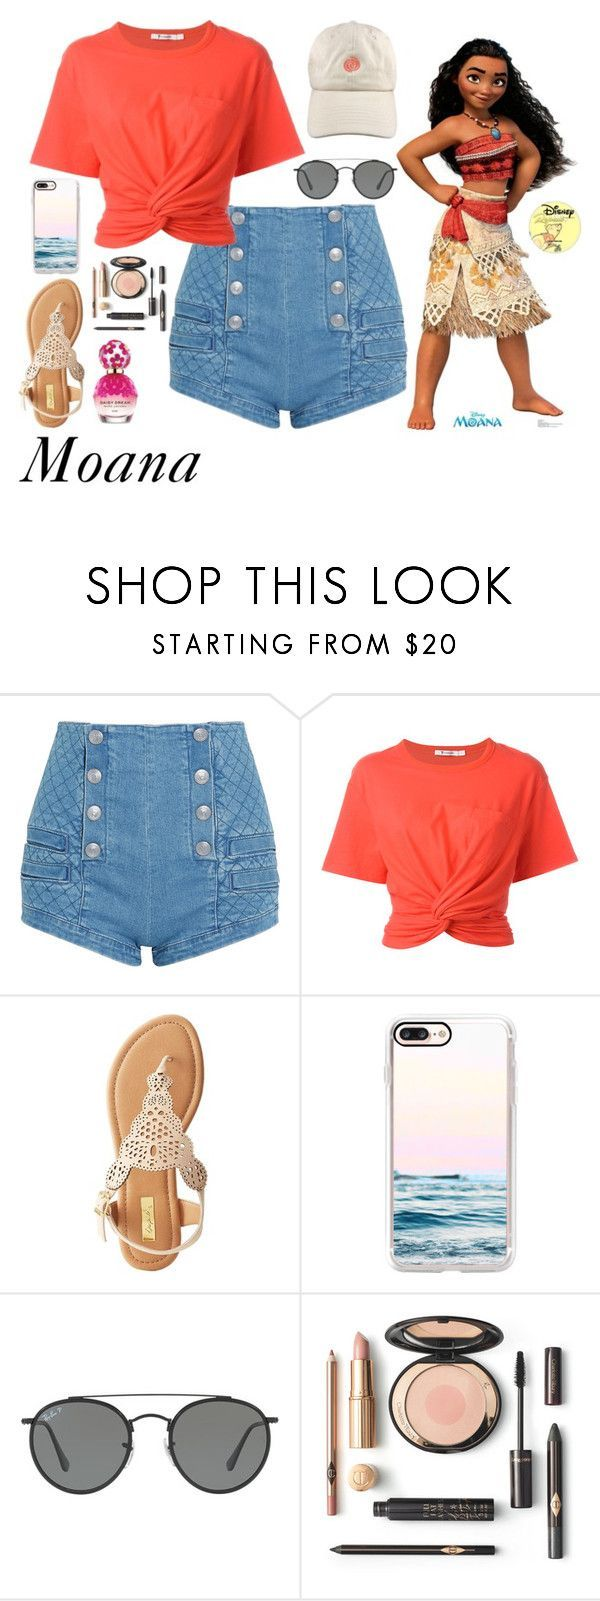 """""""Moana"""" by disneyonrepeat ❤ liked on Polyvore featuring Pierre Balmain, T By Alexander Wang, Qupid, Casetify, Ray-Ban, Marc Jacobs, disney, disneybound, disneyfashion and disneycharacter"""